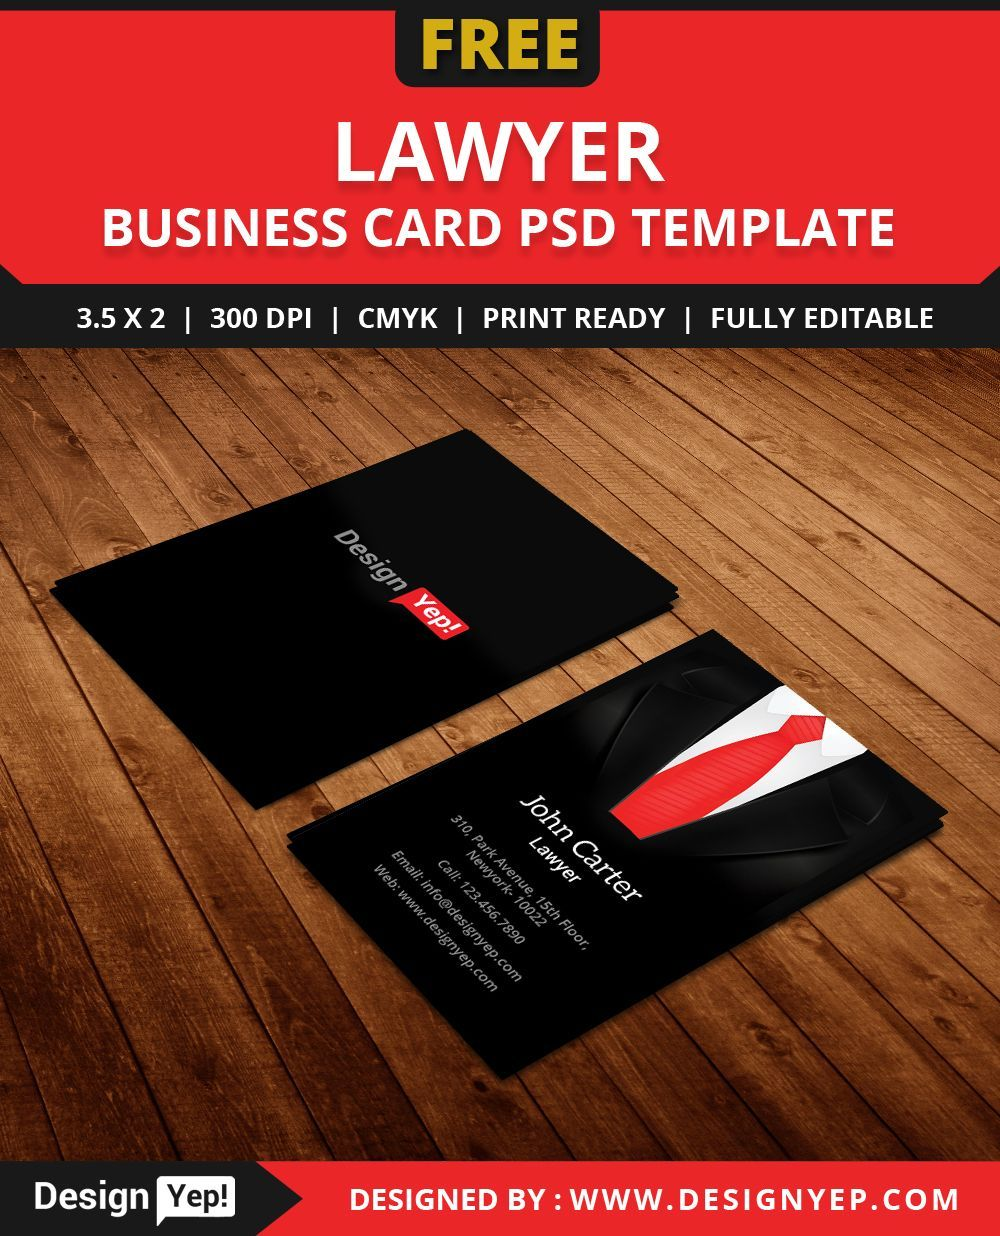 Free Lawyer Business Card Template Psd Free Business Card Intended For Legal Busine Lawyer Business Card Attorney Business Cards Free Business Card Templates